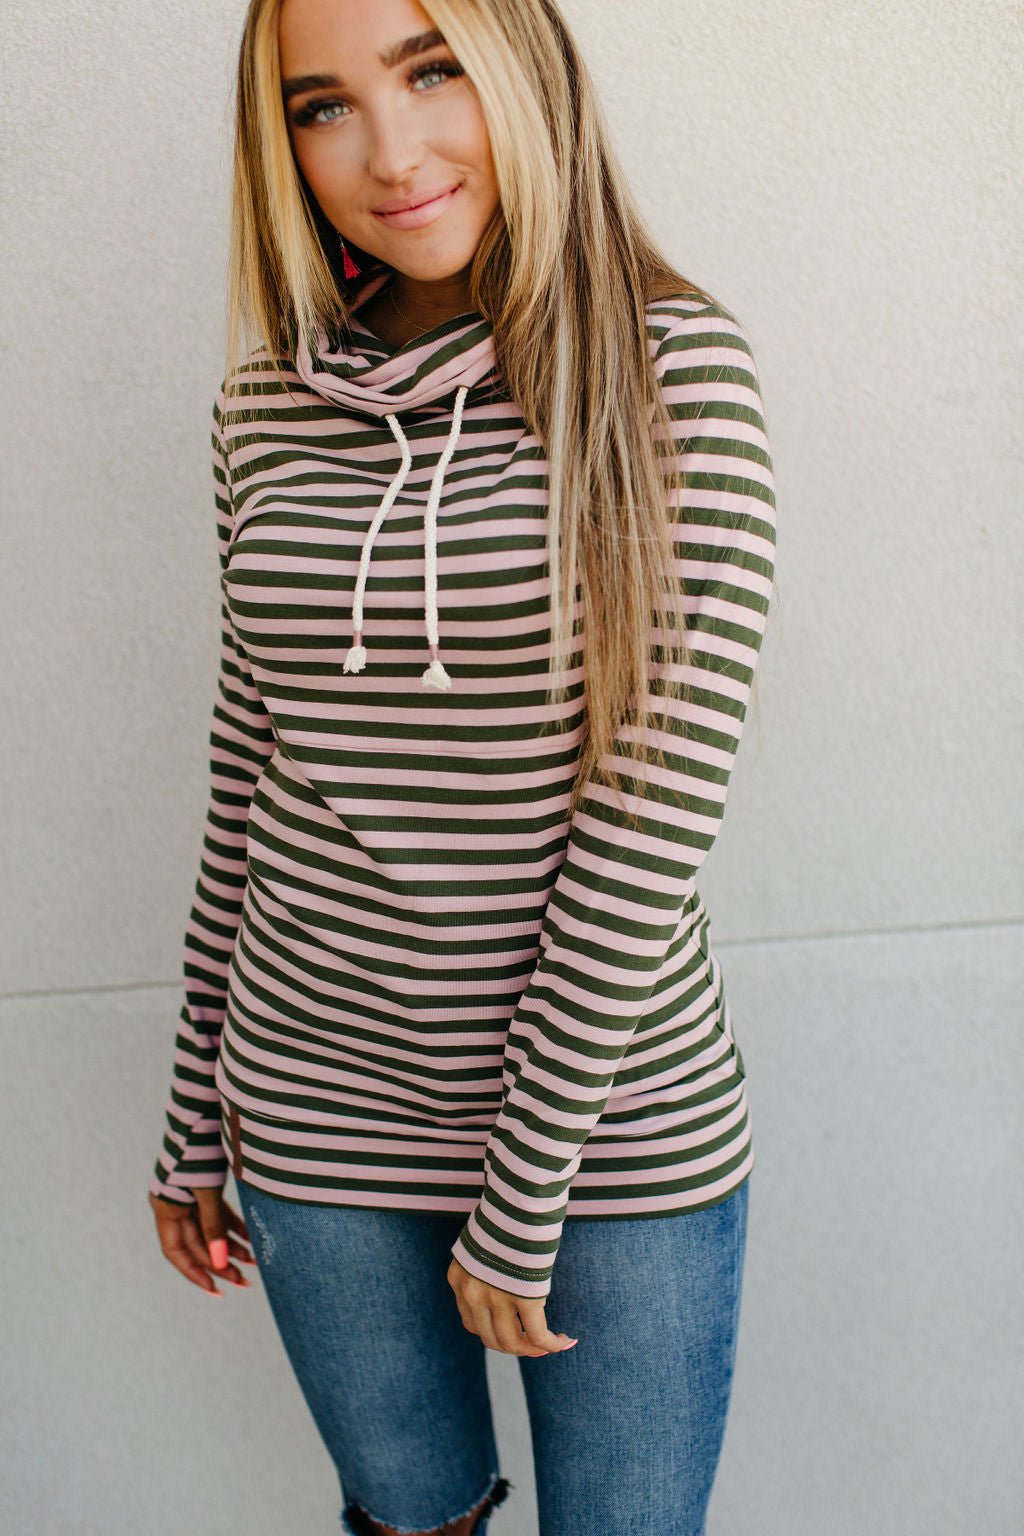 Ampersand Cowlneck Sweatshirt - All A Flutter